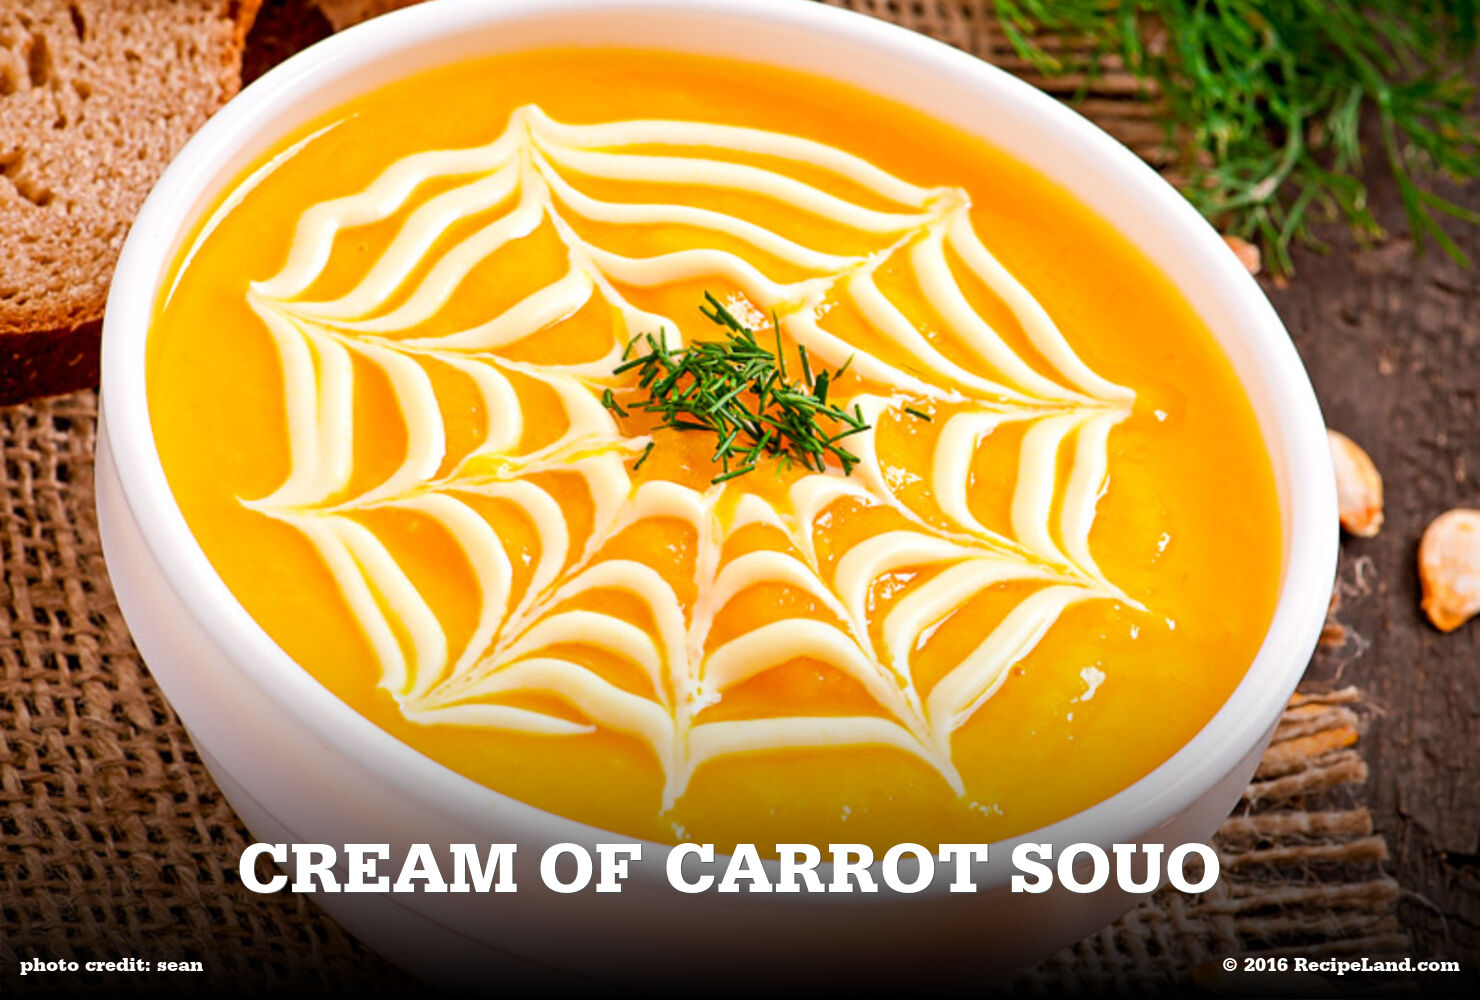 Cream of Carrot Souo